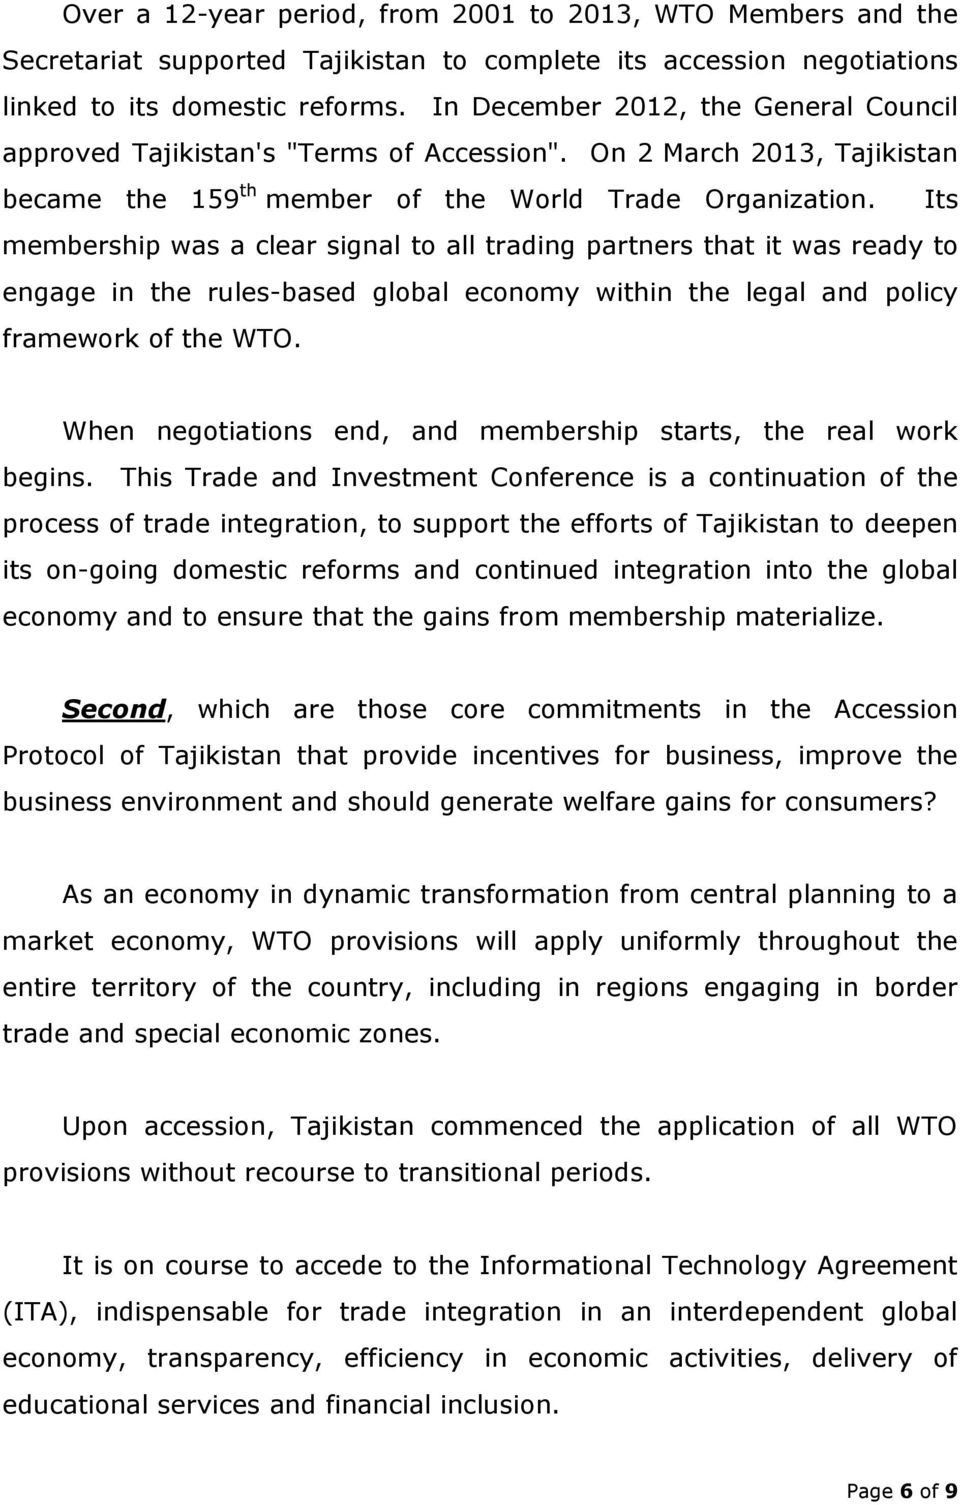 Its membership was a clear signal to all trading partners that it was ready to engage in the rules-based global economy within the legal and policy framework of the WTO.